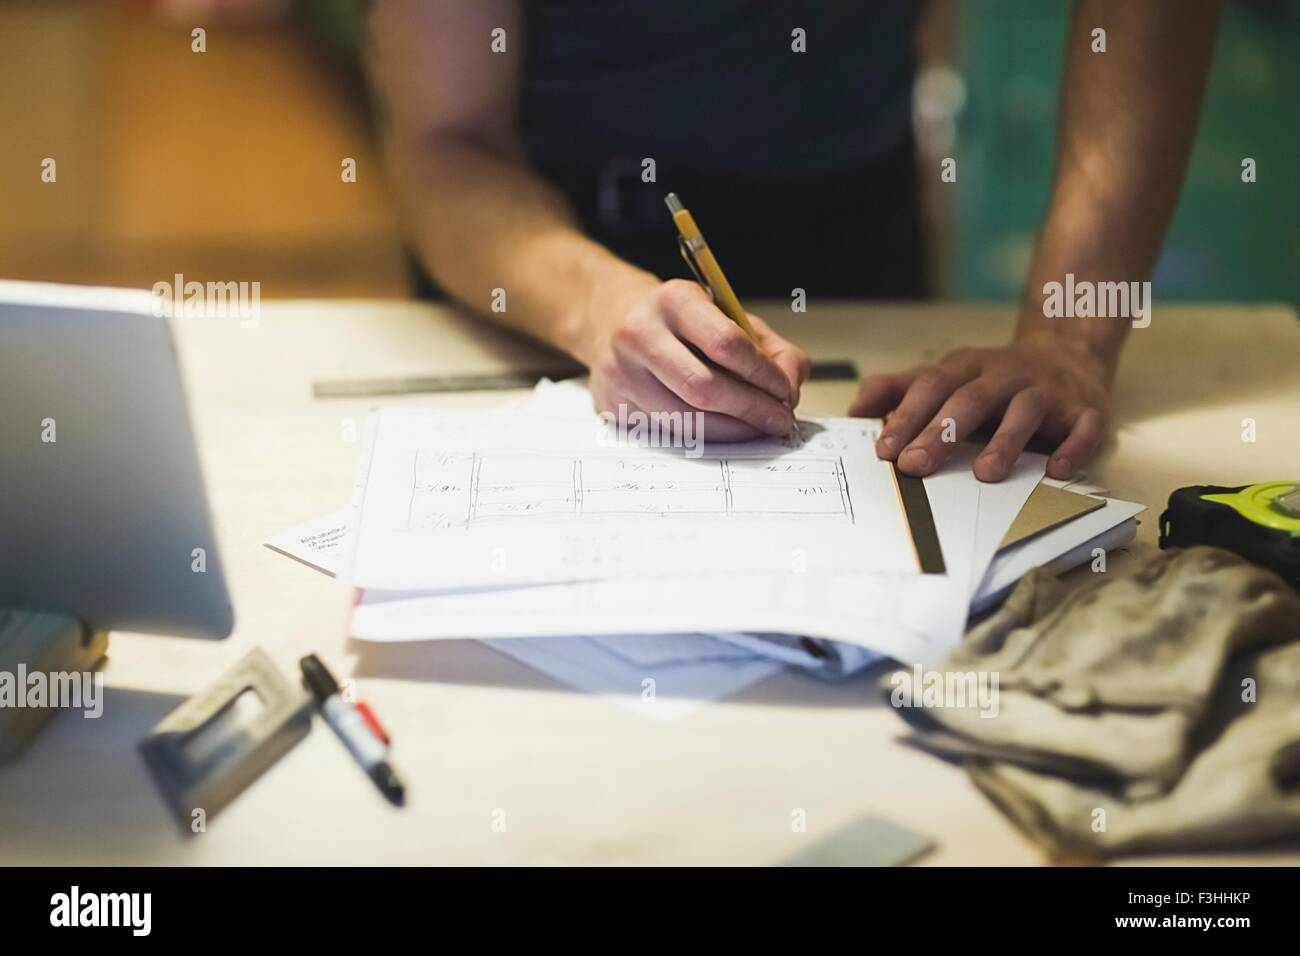 Cropped view of young mans hands writing on blueprint - Stock Image